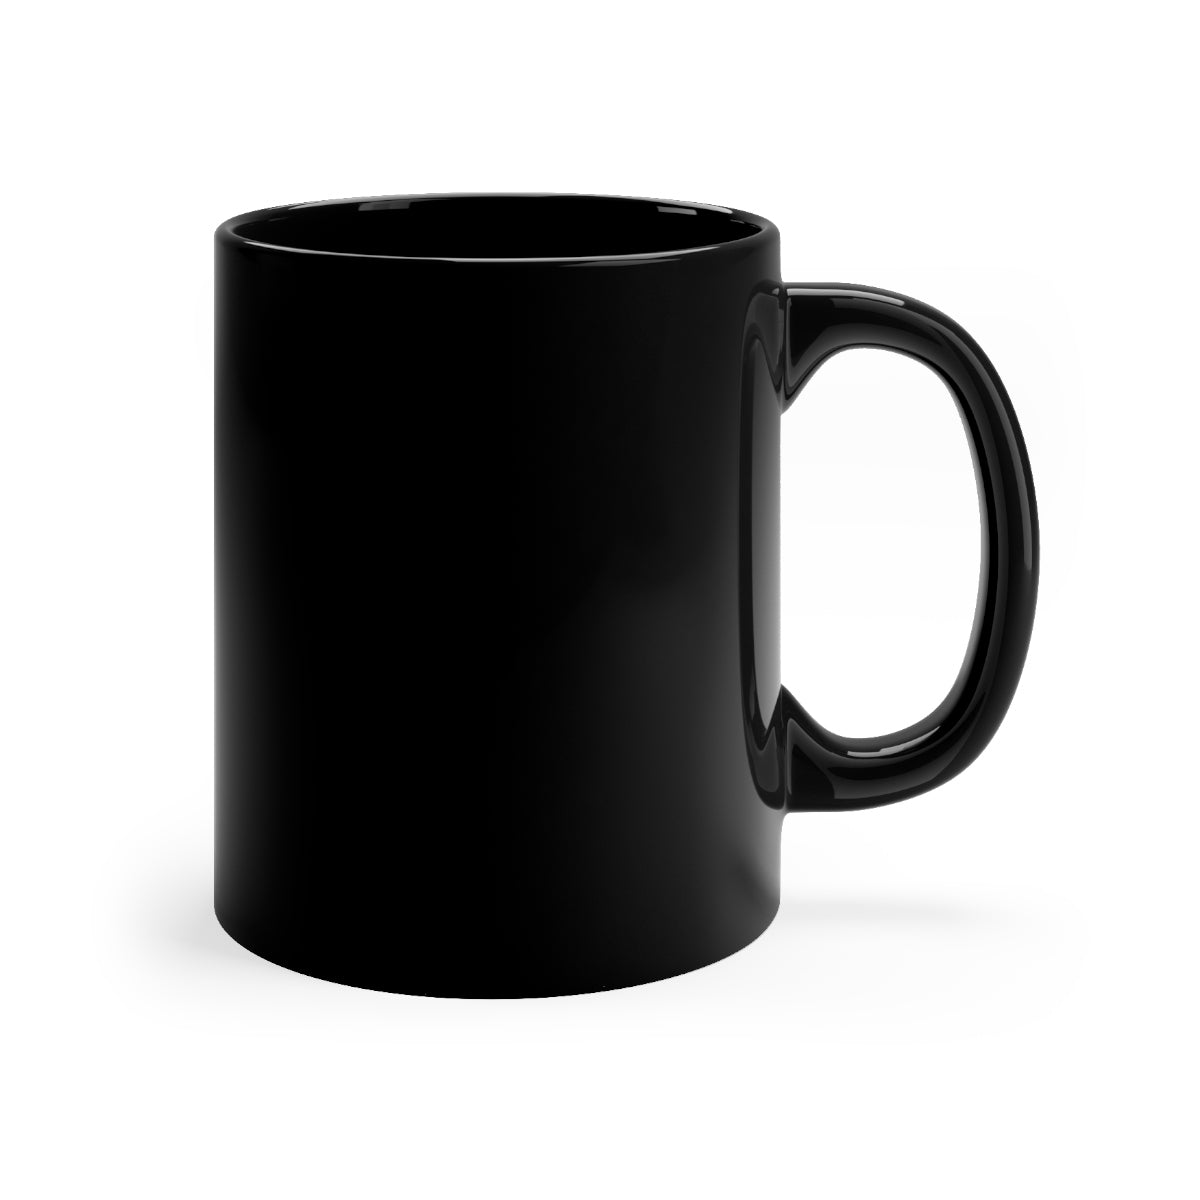 Fast AS you -  Black mug 11oz